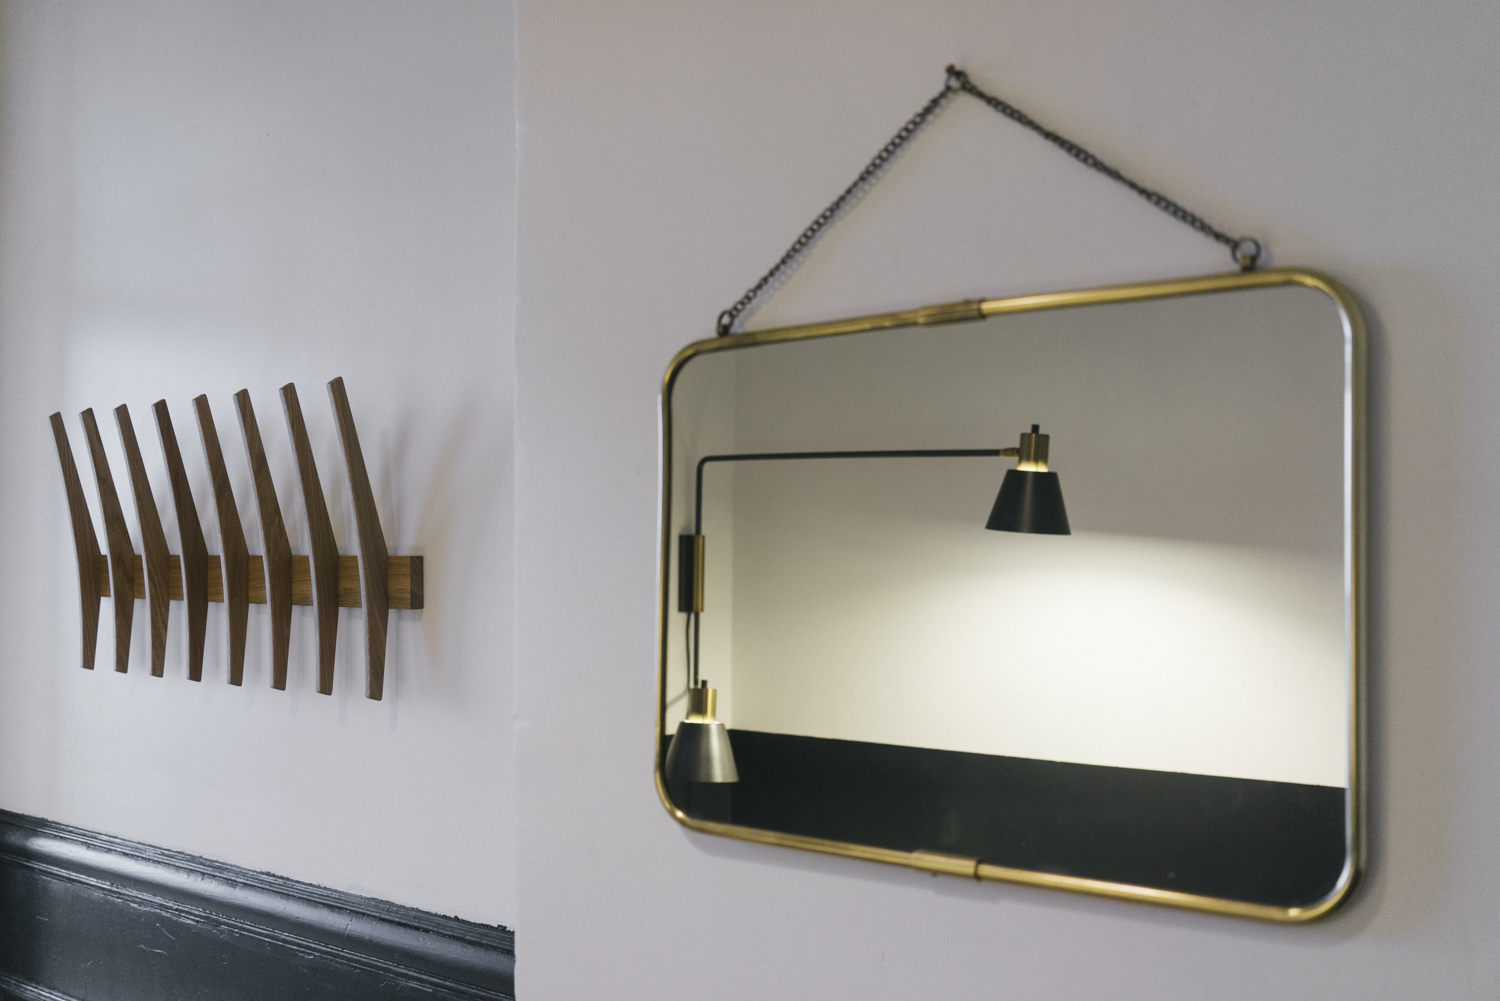 Anteroom essentials, the coat rack and mirror